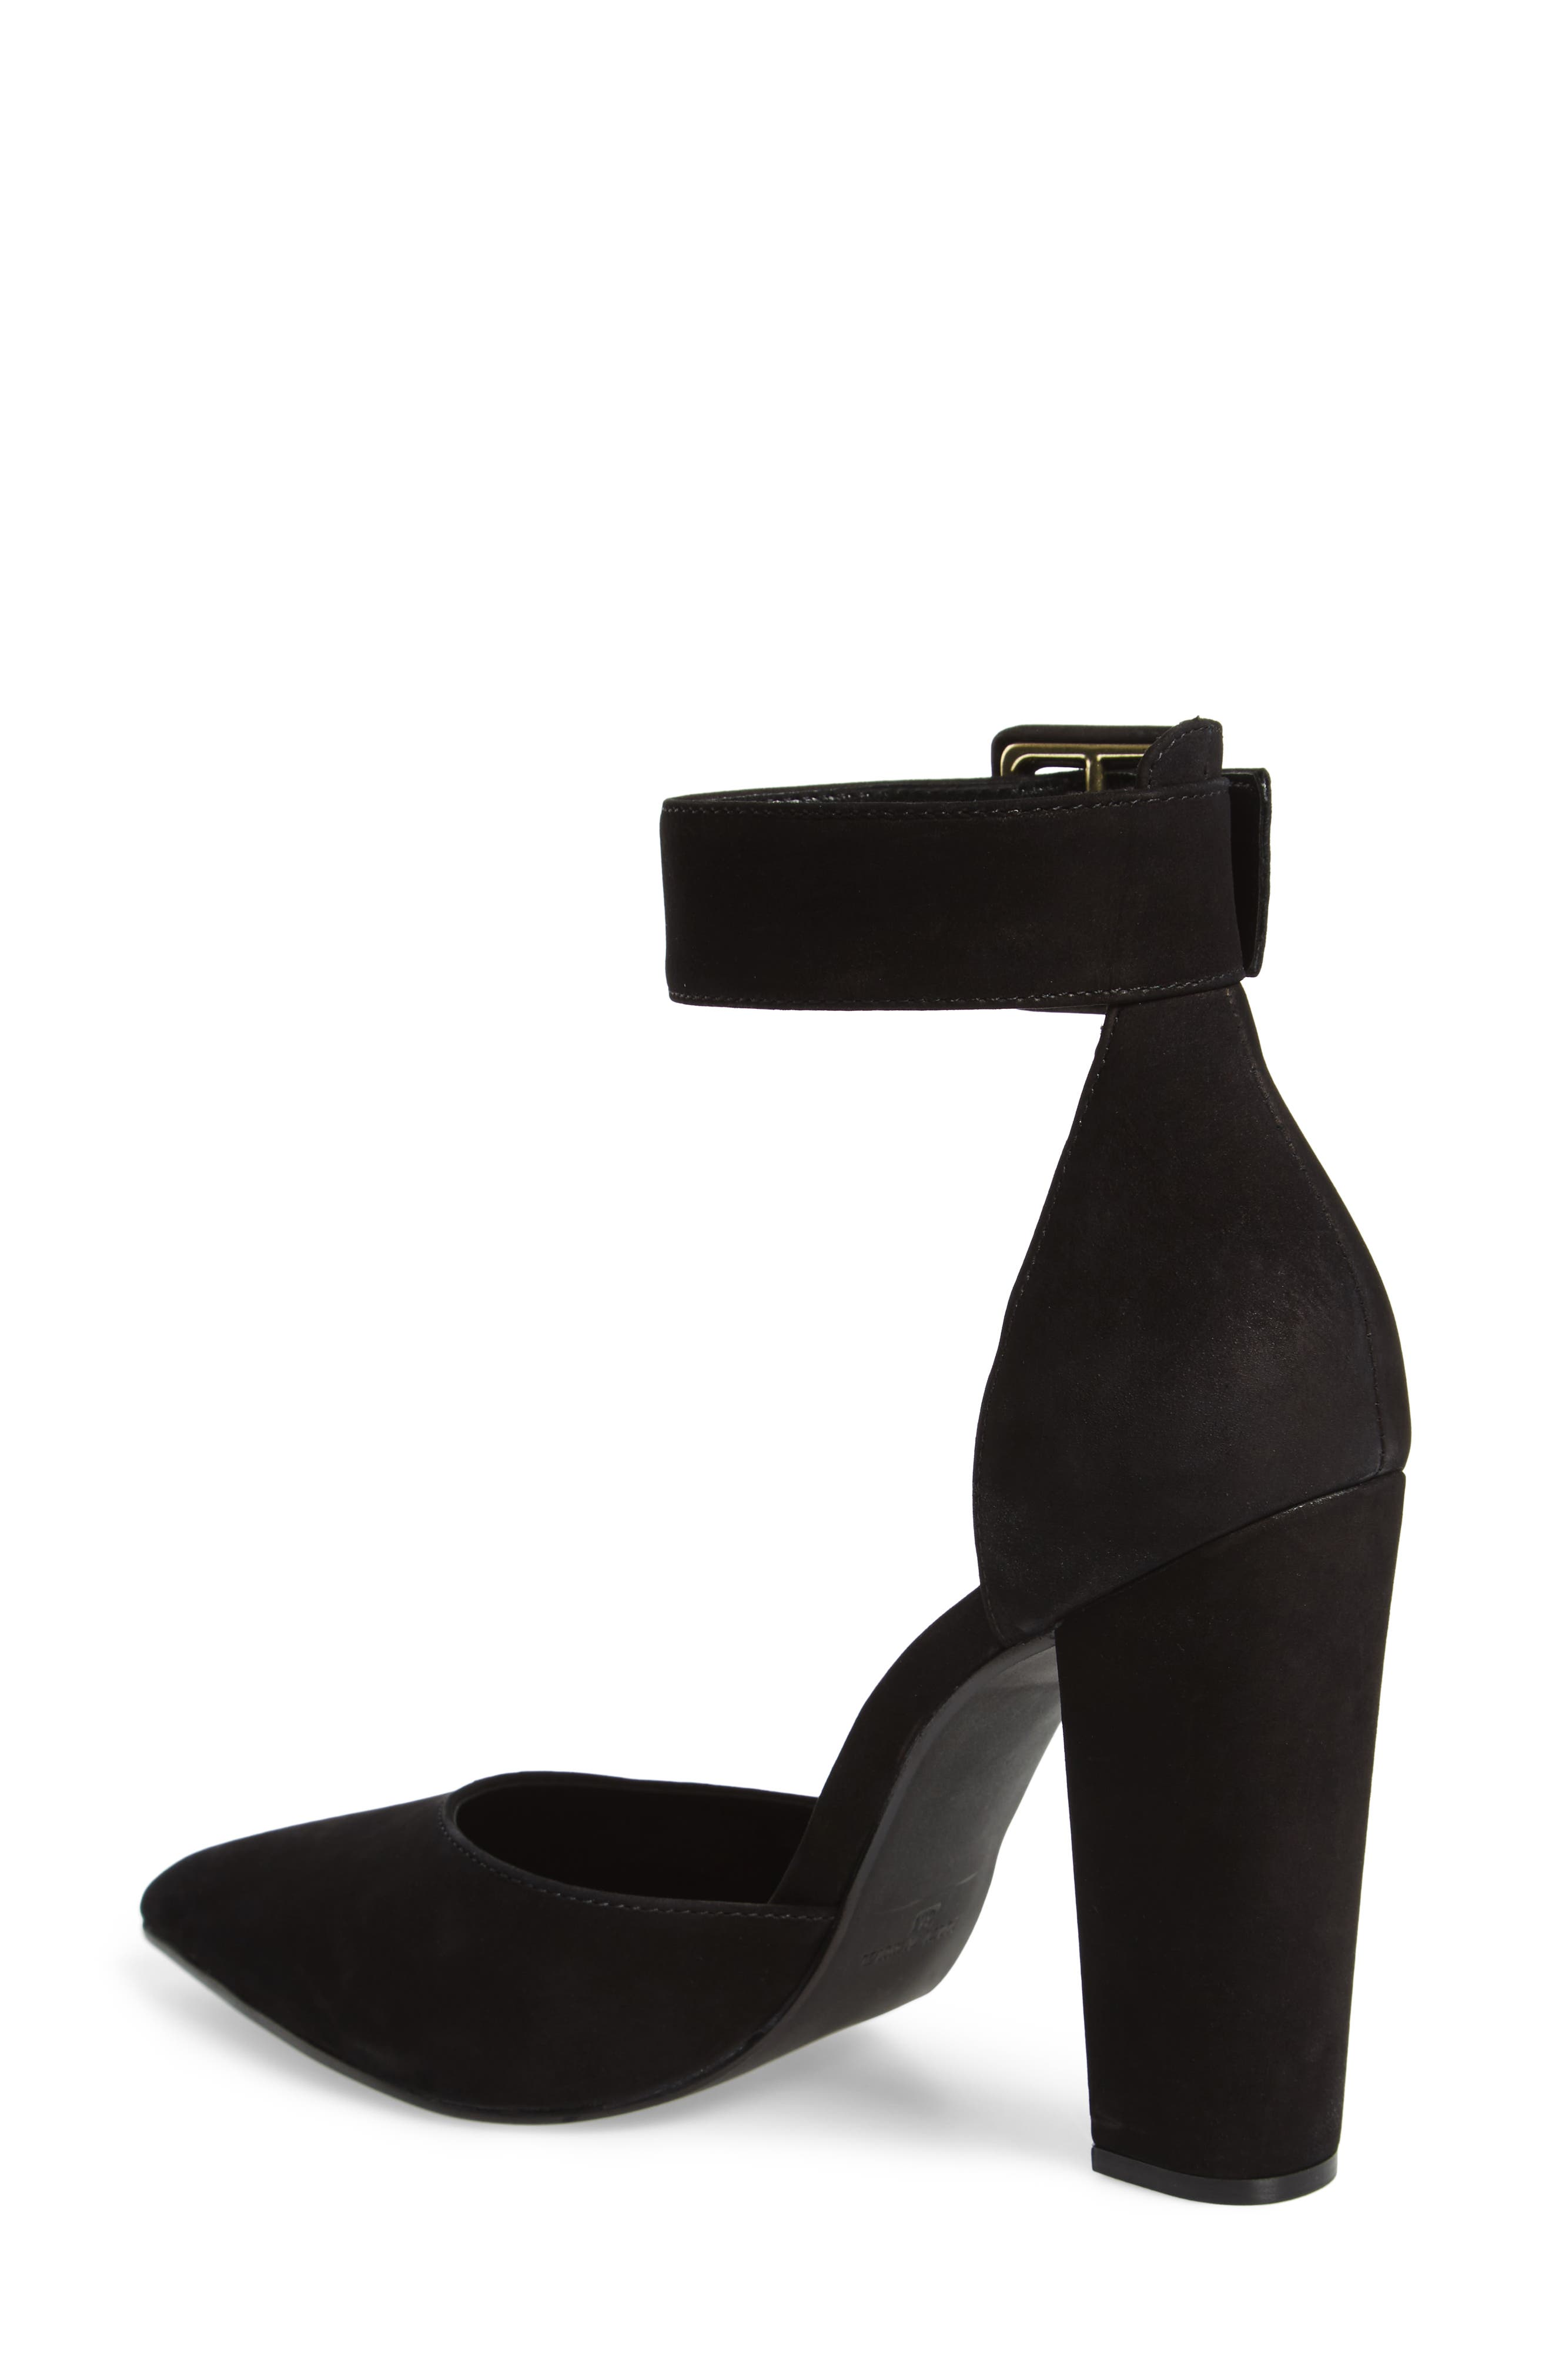 Posted Ankle Strap Pump,                             Alternate thumbnail 2, color,                             005